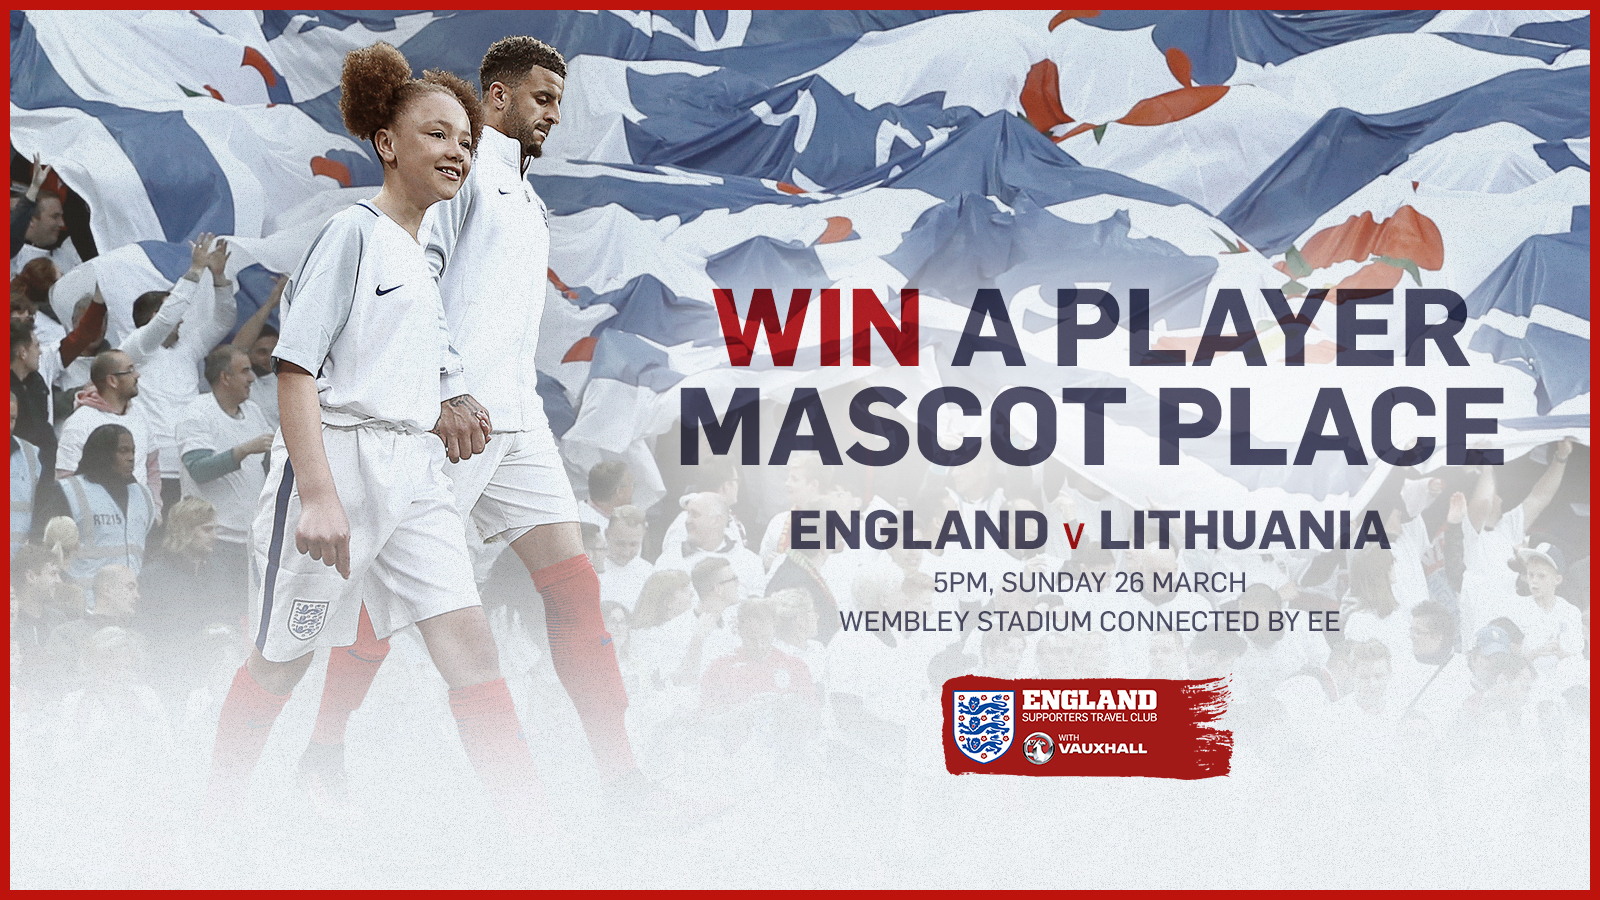 Travel Club exclusive: Win a Player Mascot place for Lithuania